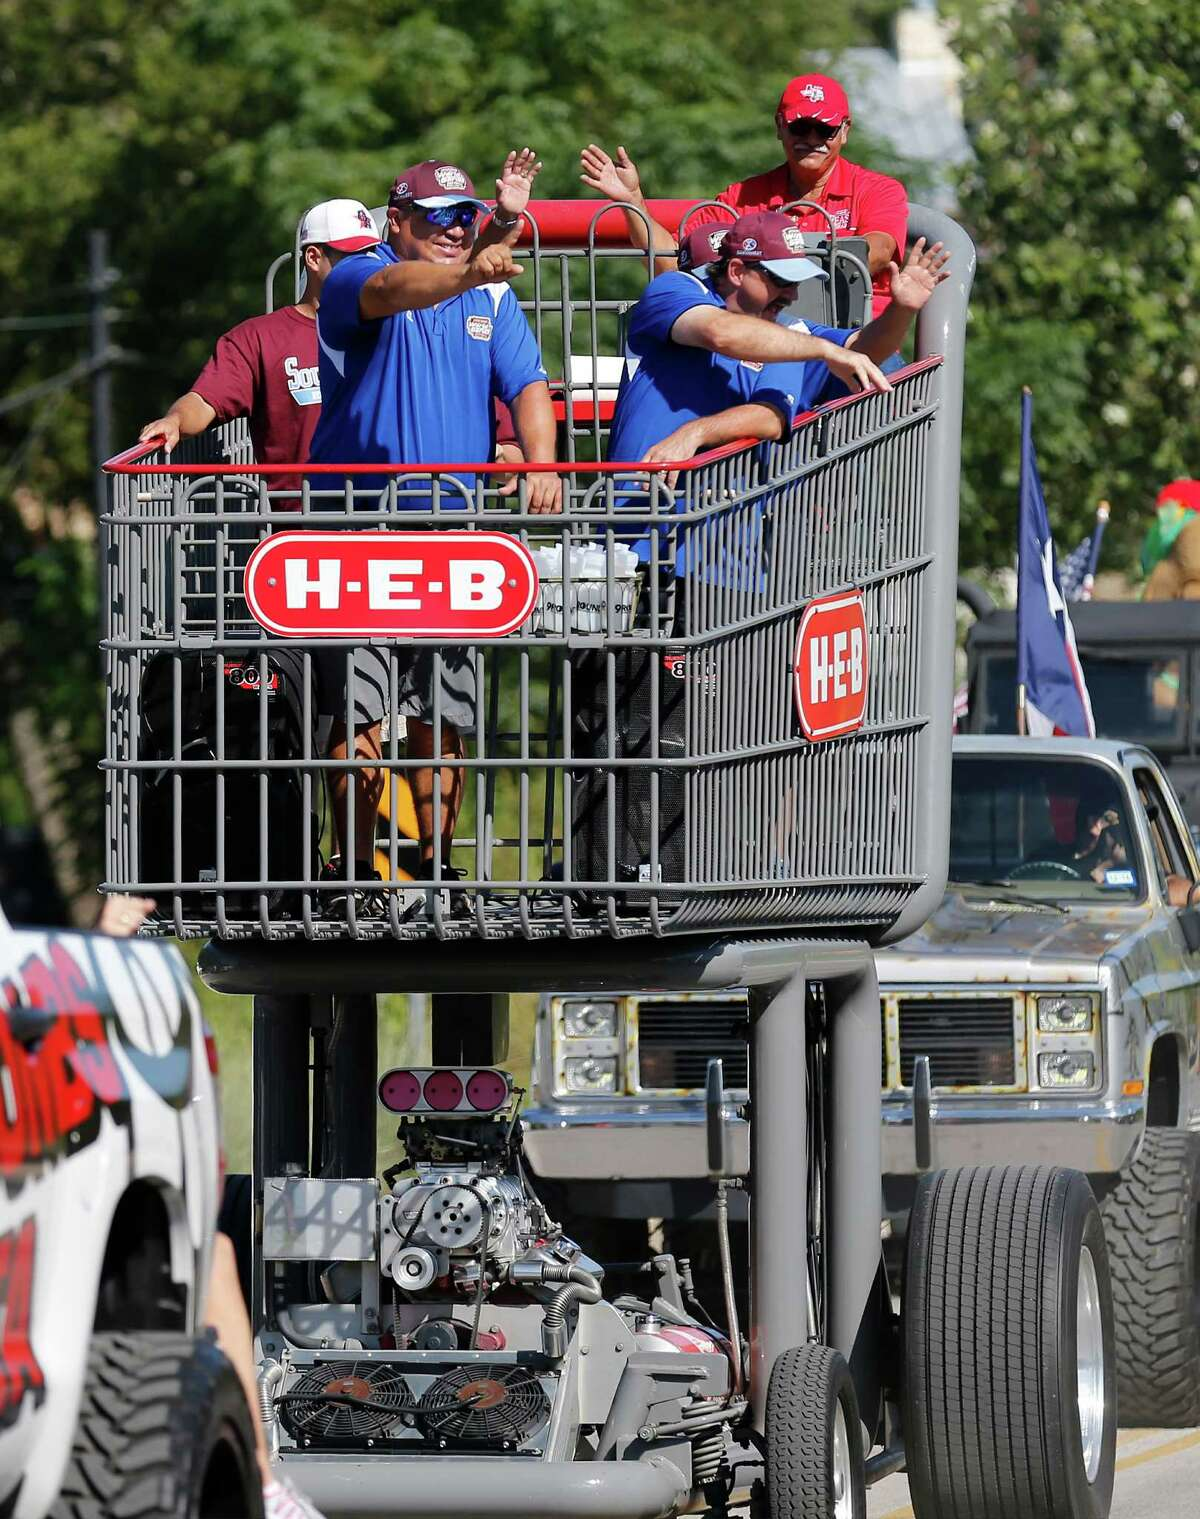 Head coach Mario Sanchez (foreground) along with assistants Matt Norman and Frank Ball get a ride in an over-sized shopping cart as supporters and fans of the Greater Helotes Little League softball team lined Old Bandera Road to cheer the team of girls who were crowned the 2016 Little League Softball World Series Champions during a parade in their honor on Saturday, Aug. 27, 2016. A small procession of fire trucks, local businesses and small-town royal courts led the parade but the biggest cheers came for 13 young women who captured the coveted title of world champions.